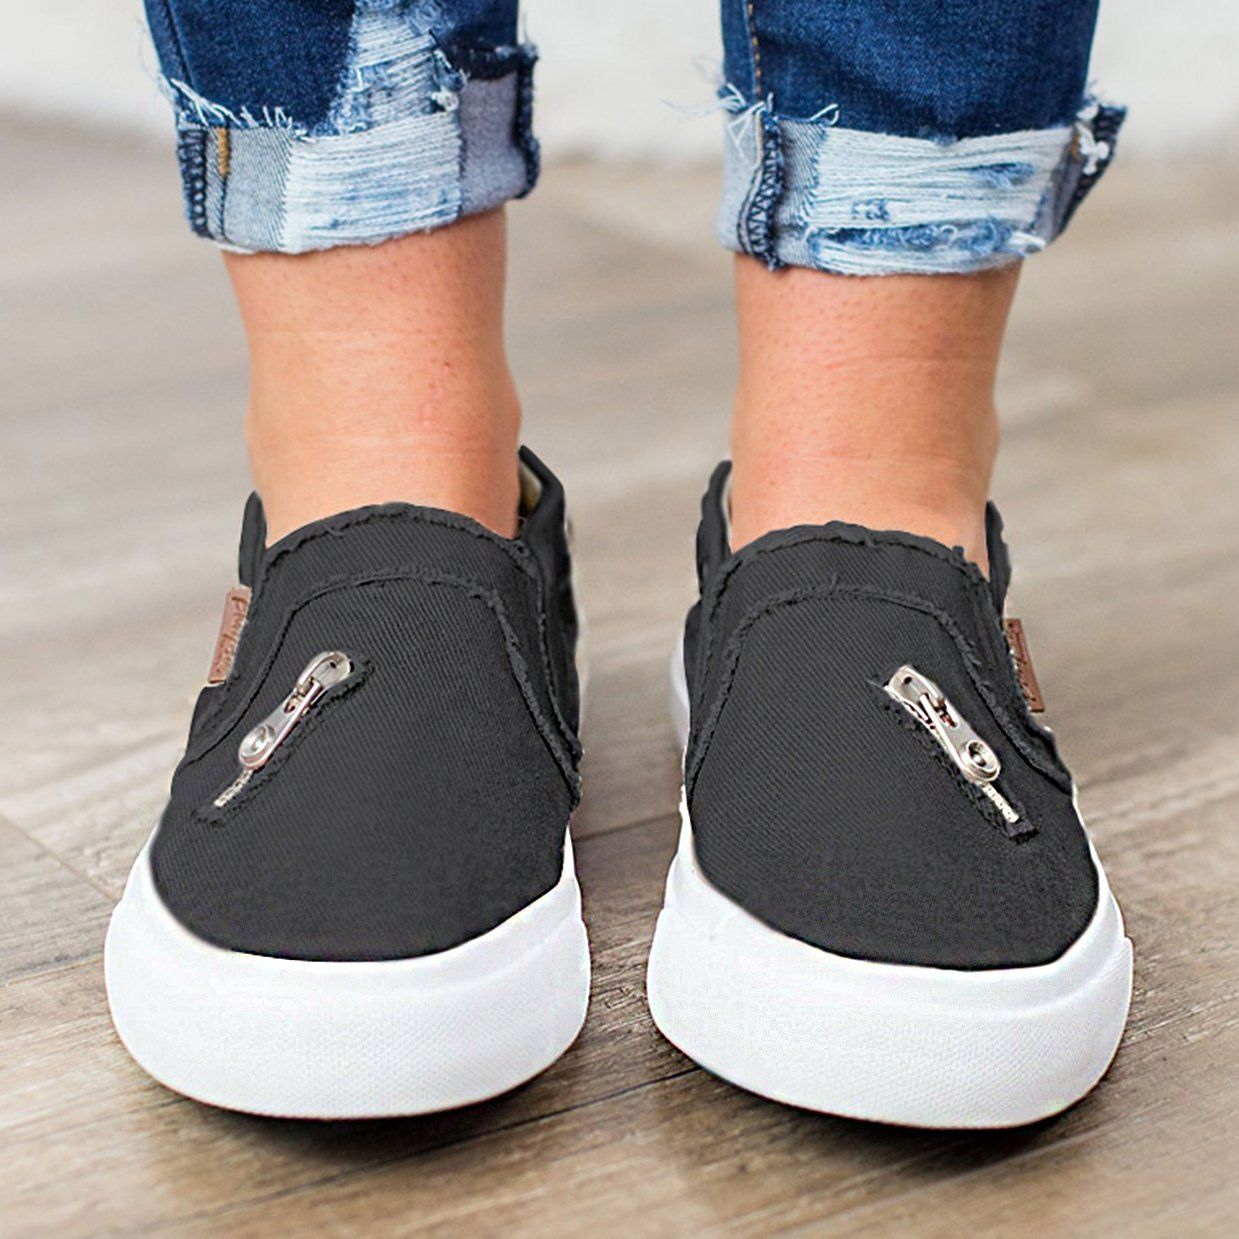 Fashion Lightweight Slip On Flat Canvas Sneaker Casual Shoes Loafers